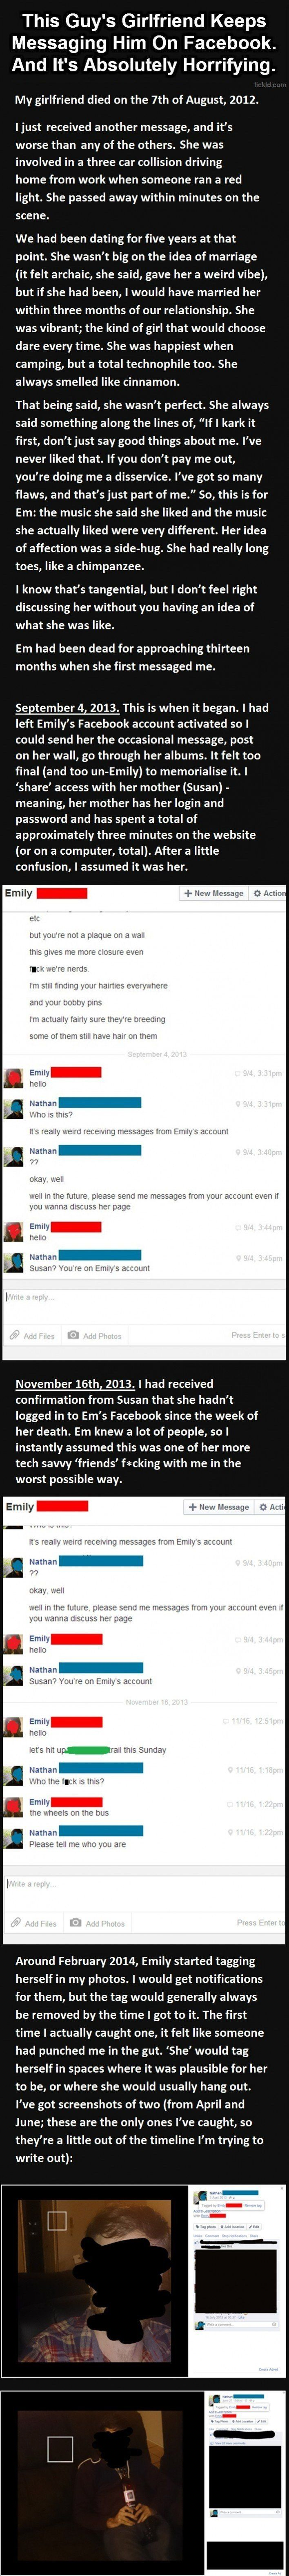 This Guy's Facebook Inbox Has Everybody Terrified. When You Read It, You'll See Why.